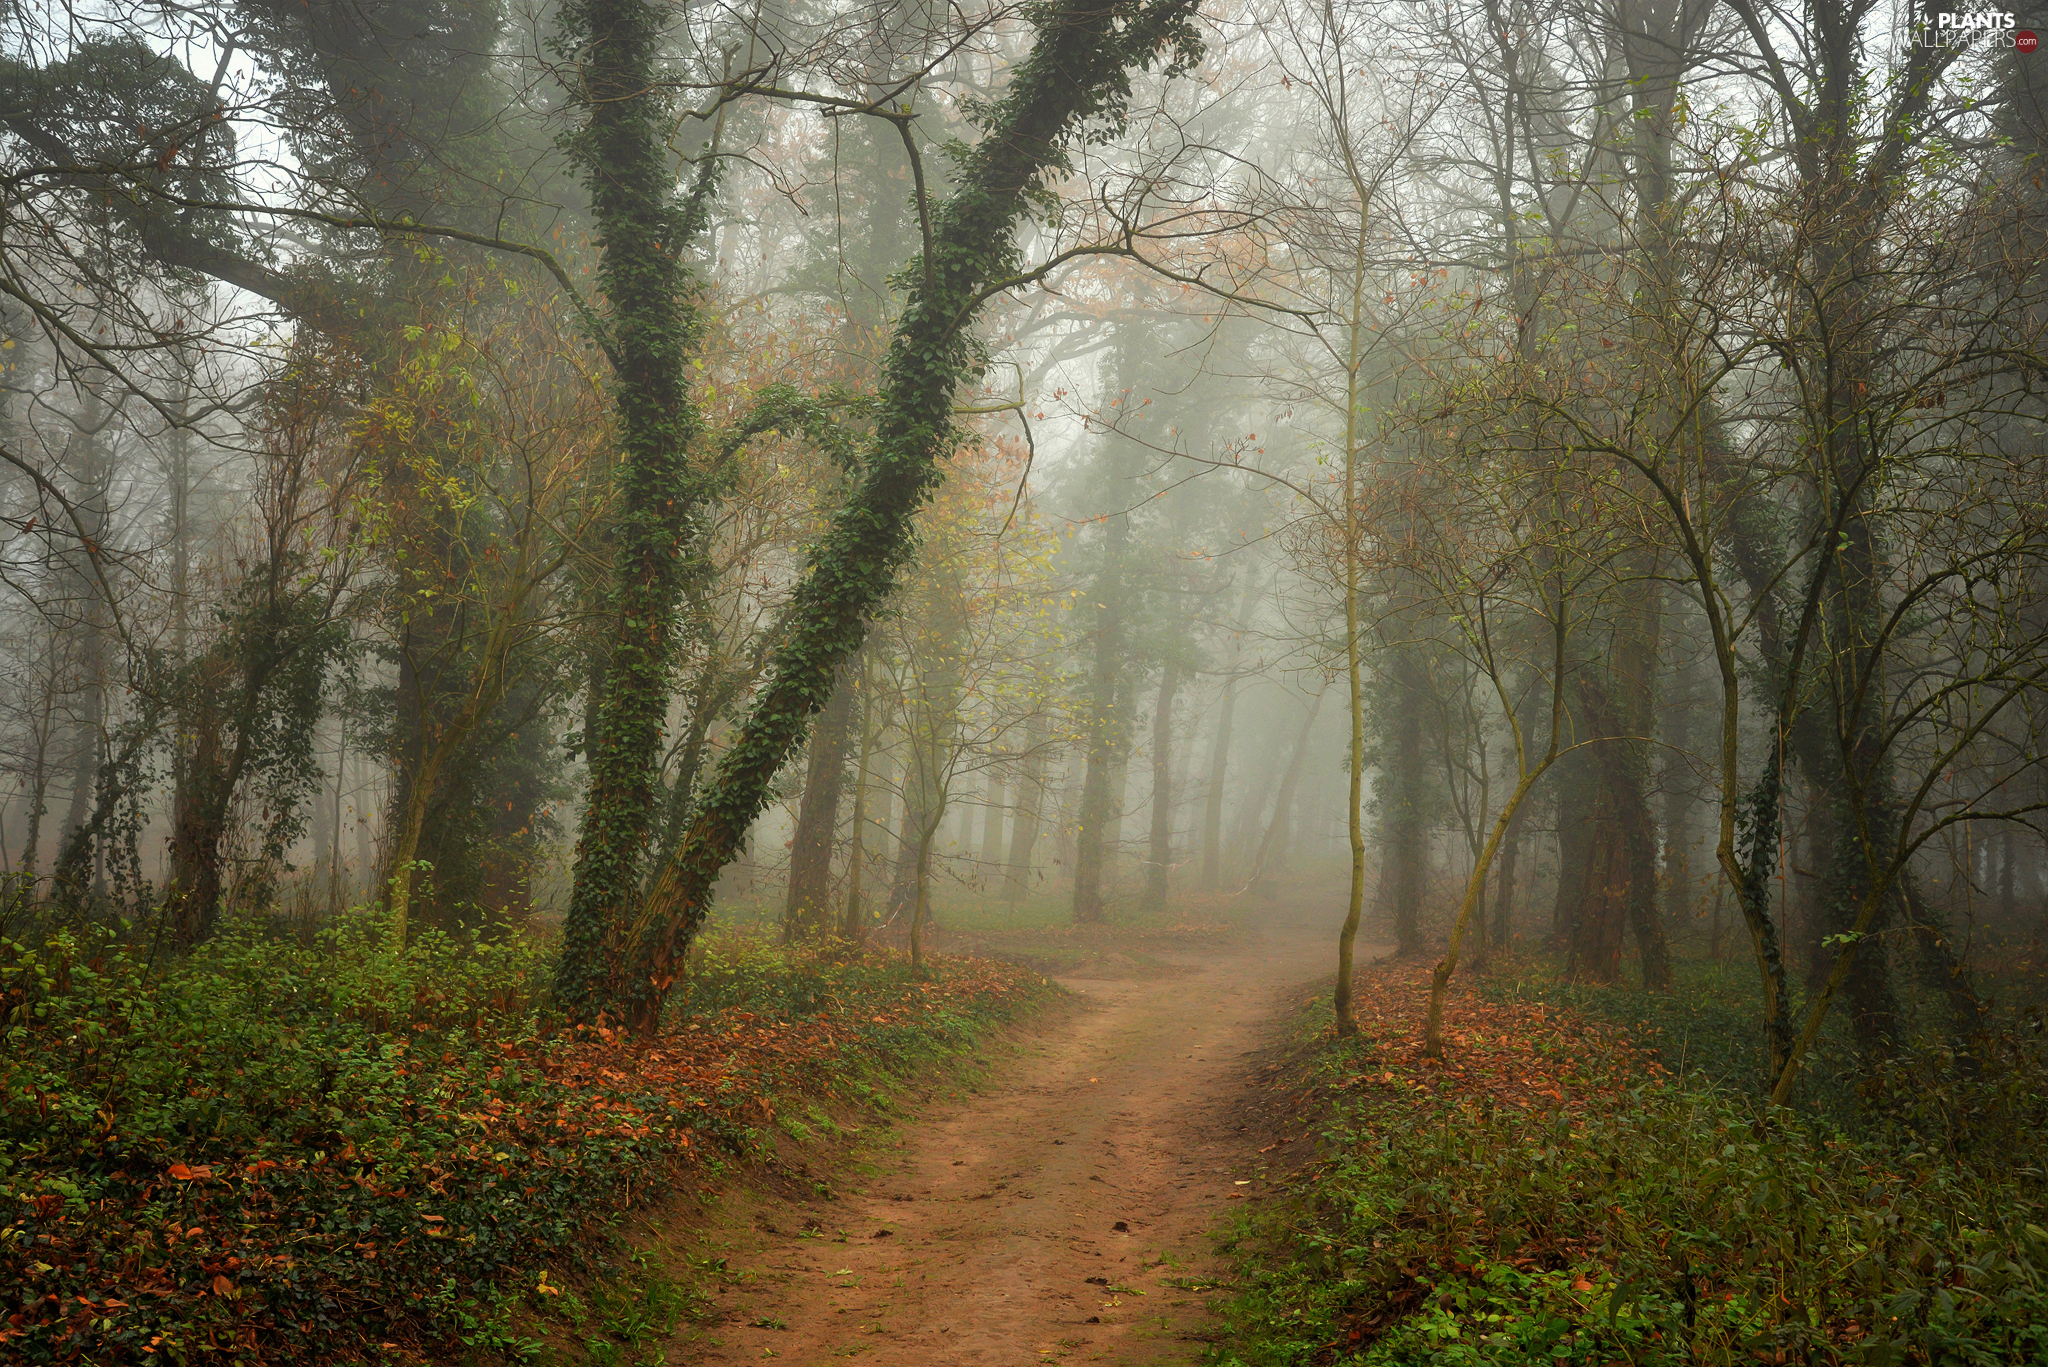 Vines, trees, Way, viewes, autumn, forest, Fog